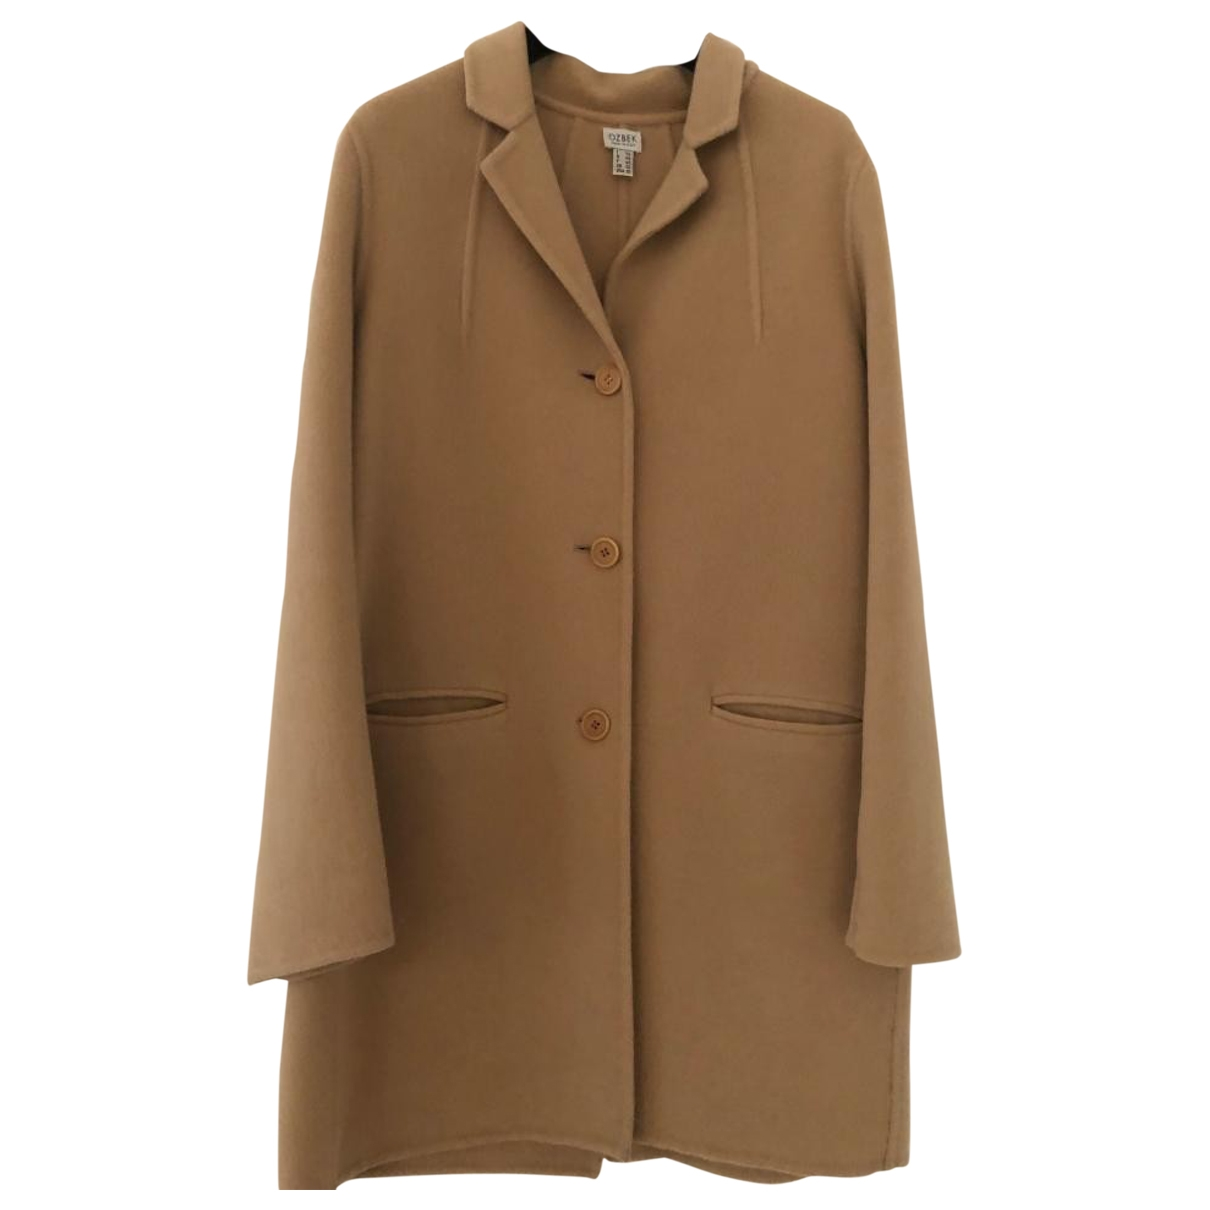 Rifat Ozbek \N Camel Cashmere coat for Women 44 IT